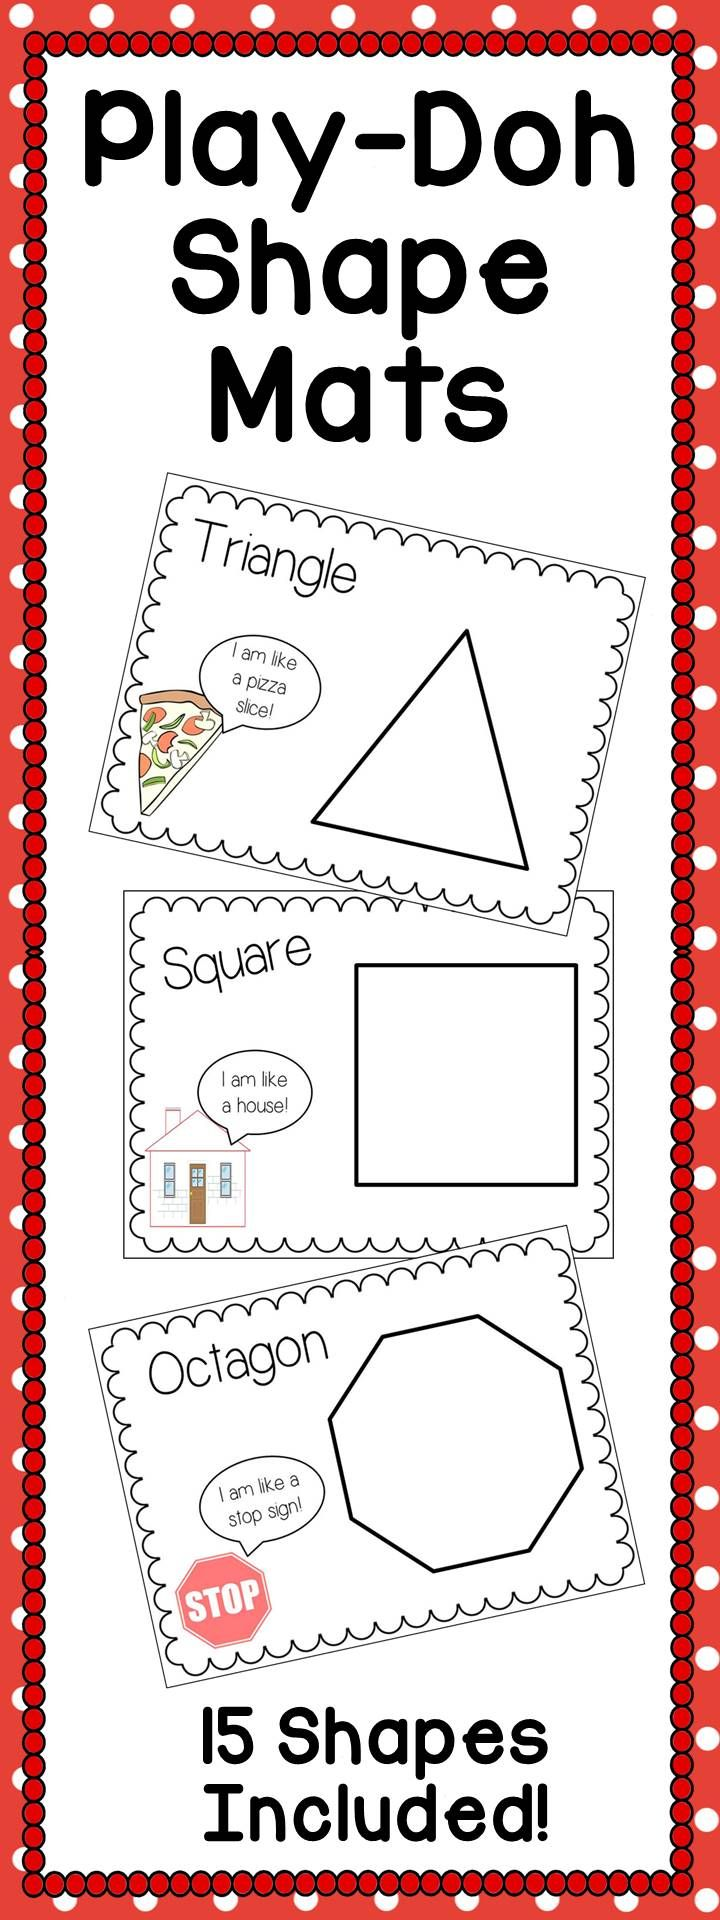 Shape Play-Doh Mats. Includes 15 different unique shapes- not just the basics! Students use play-doh to trace the lines of the shapes. Perfect math center in your kindergarten classroom!